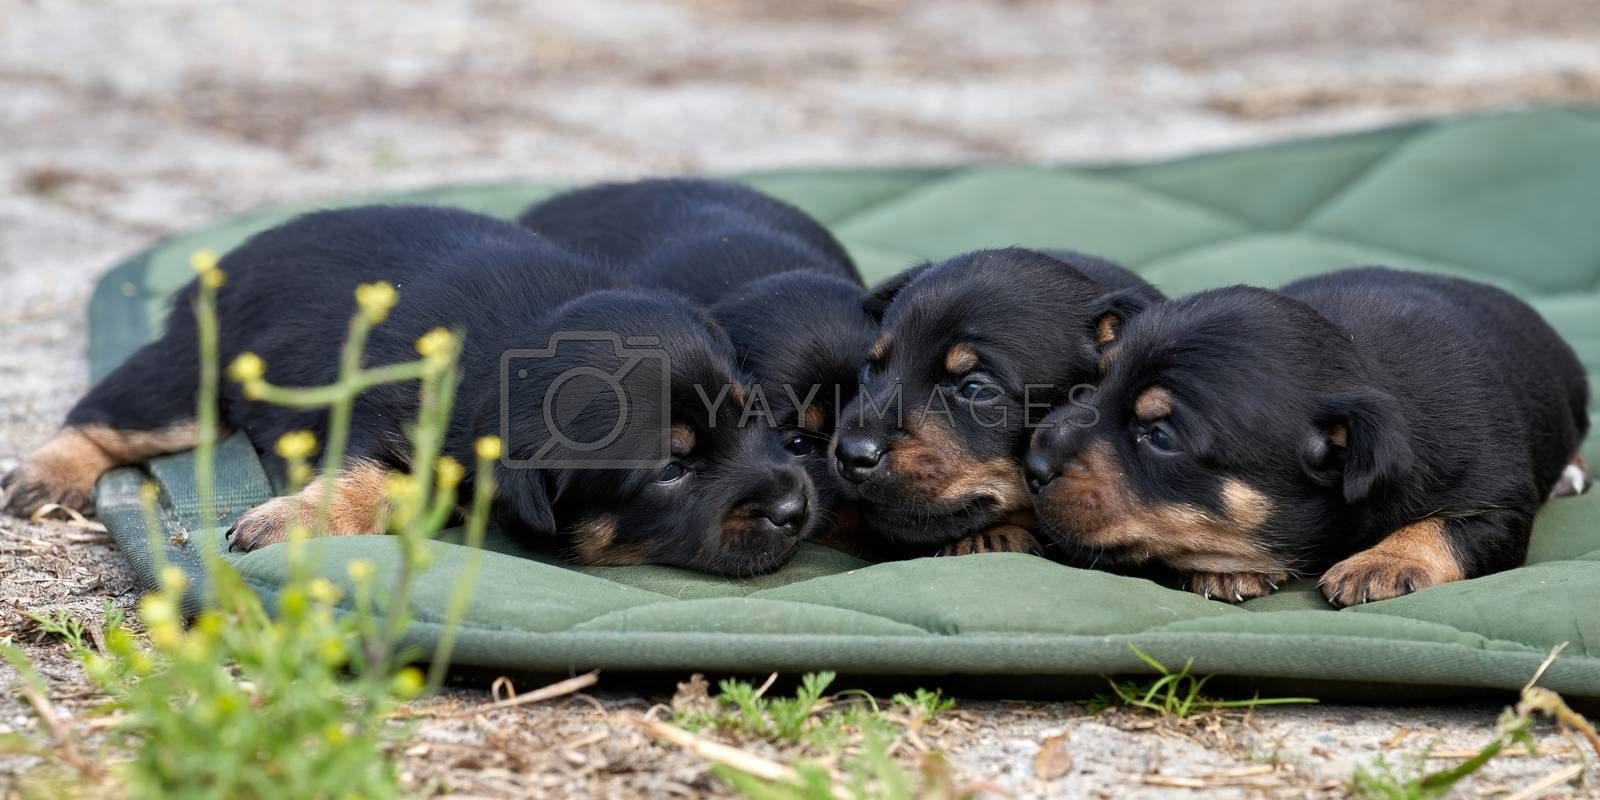 Jack Russell terrier puppies. Close-up portrait, lie on a green cloth. Banner or cover.